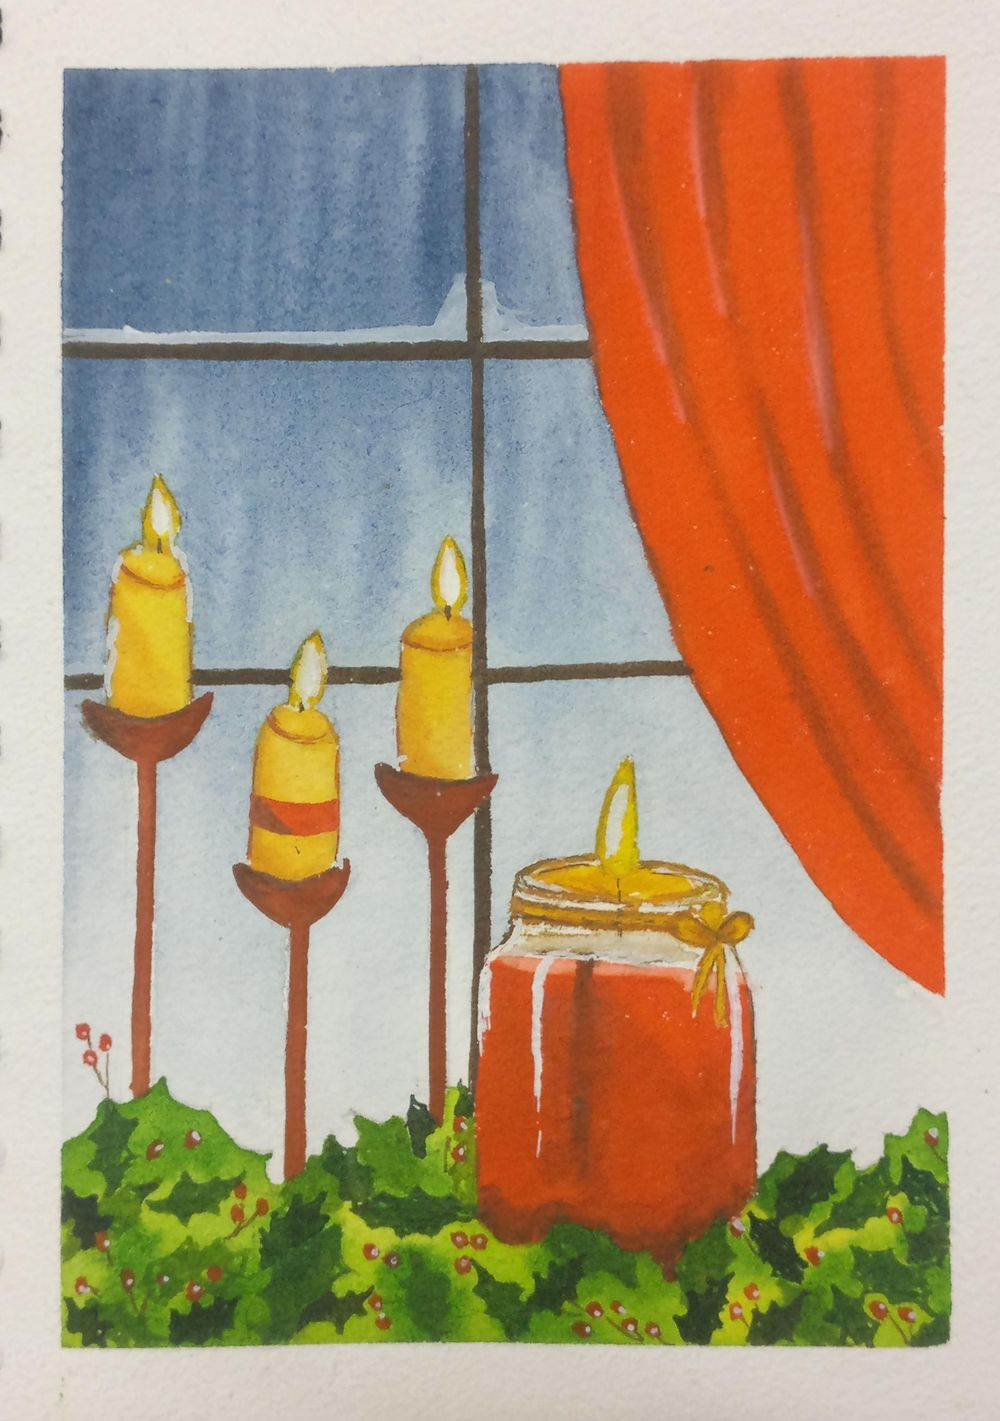 Christmas with watercolors - image 23 - student project